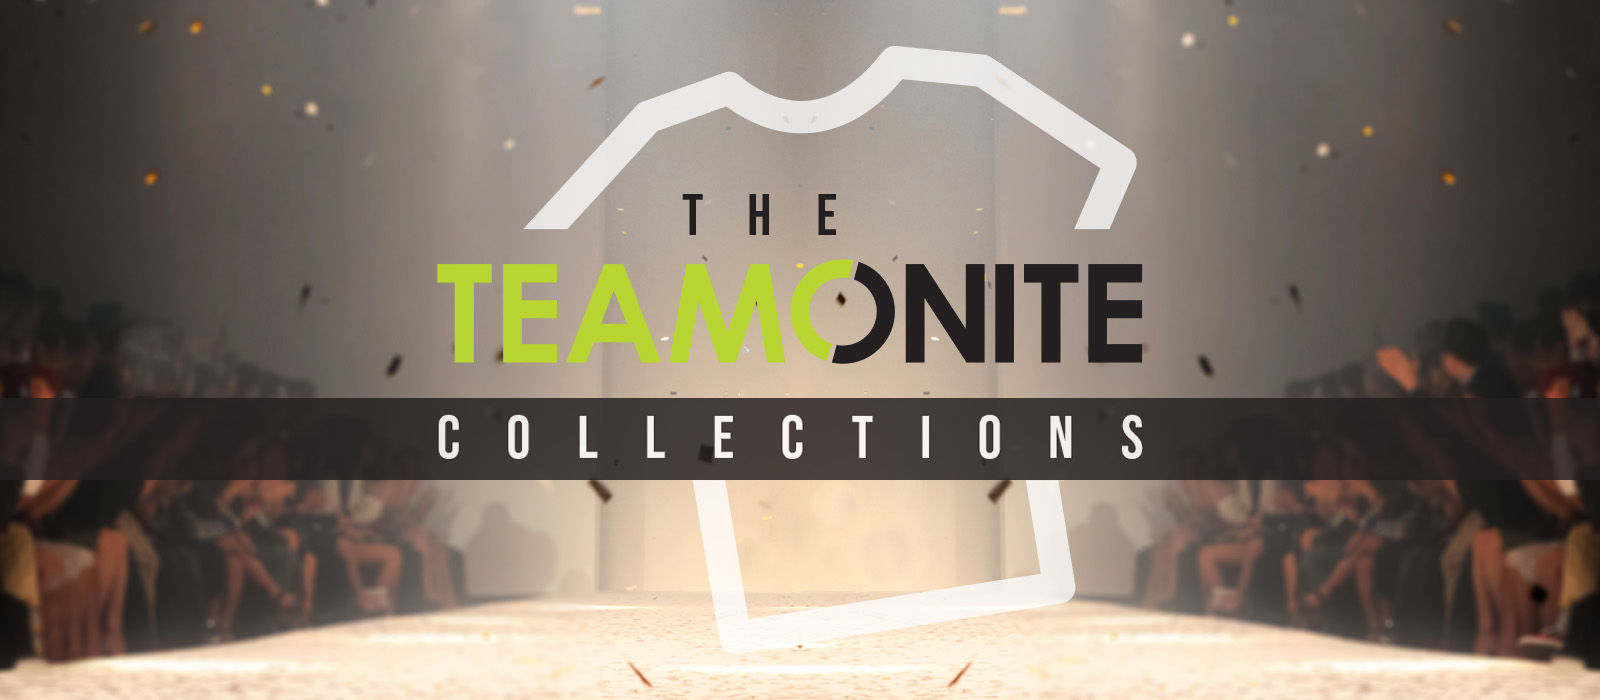 The Teamonite Collections